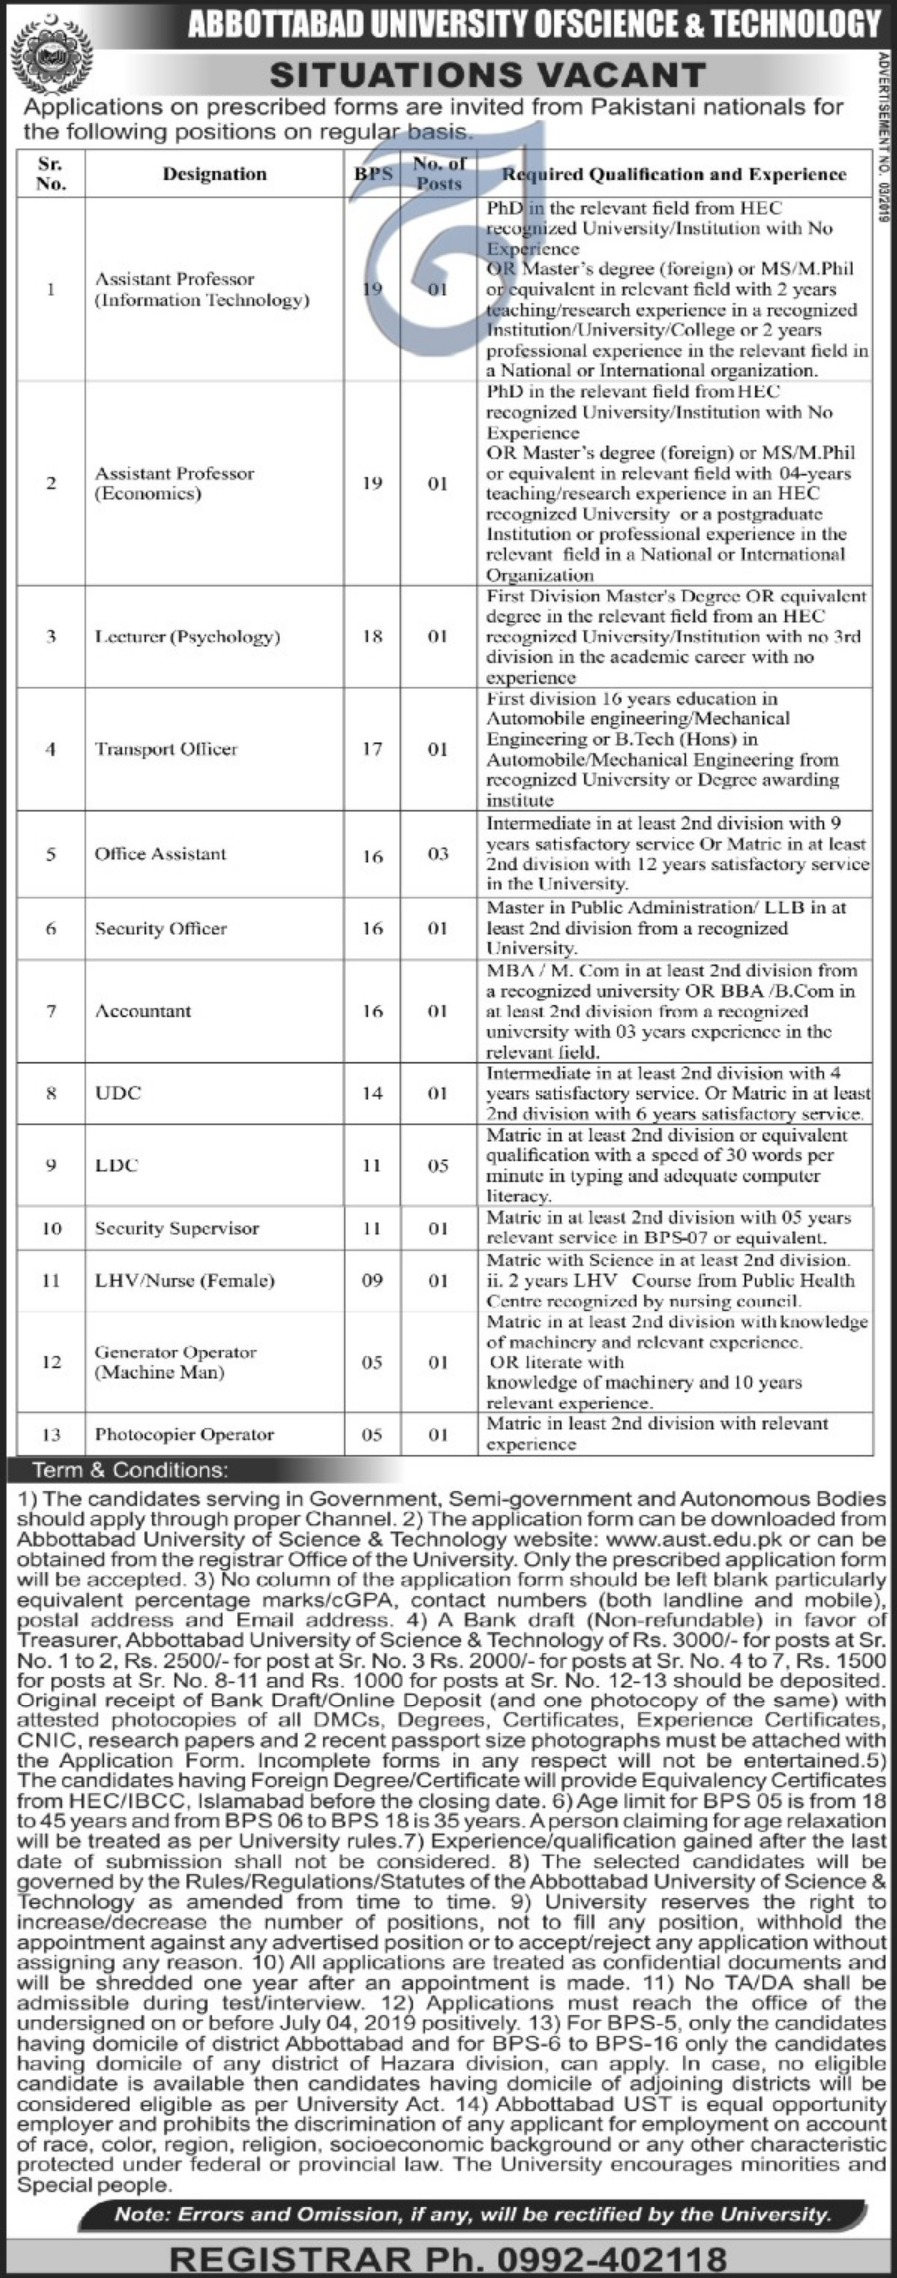 Abbottabad University of Science & Technology AUST Jobs 2019